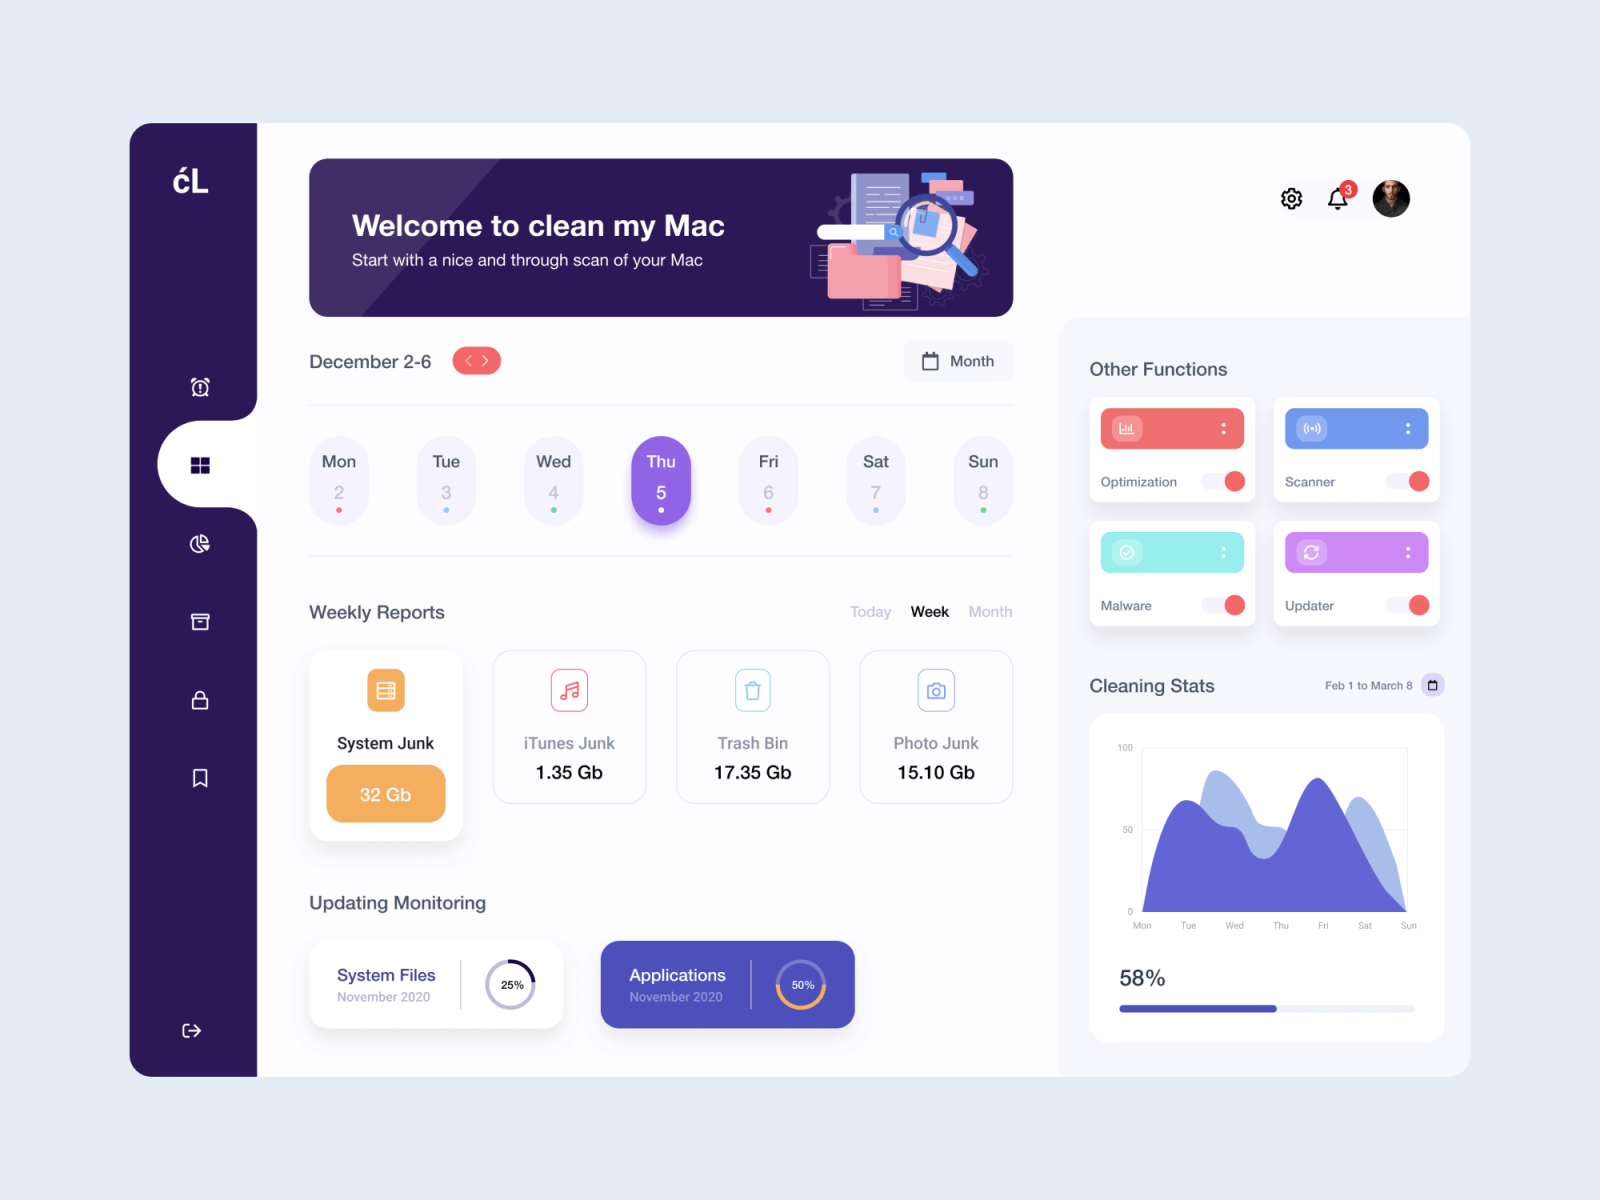 Mac Cleaning app dashboard by Mahrukh Parvez on Dribbble